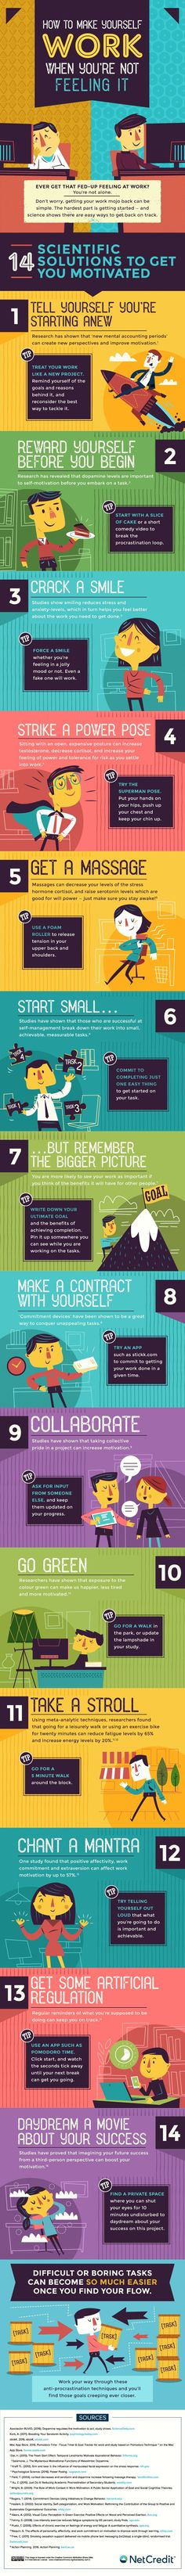 How to Make Yourself Work When You're Not Feeling It - #infographic Motivation For Work, Motivation Inspiration, College Motivation, Career Inspiration, How To Motivate, Motivate Yourself, How To Focus, How To Achieve Goals, How To Improve Yourself